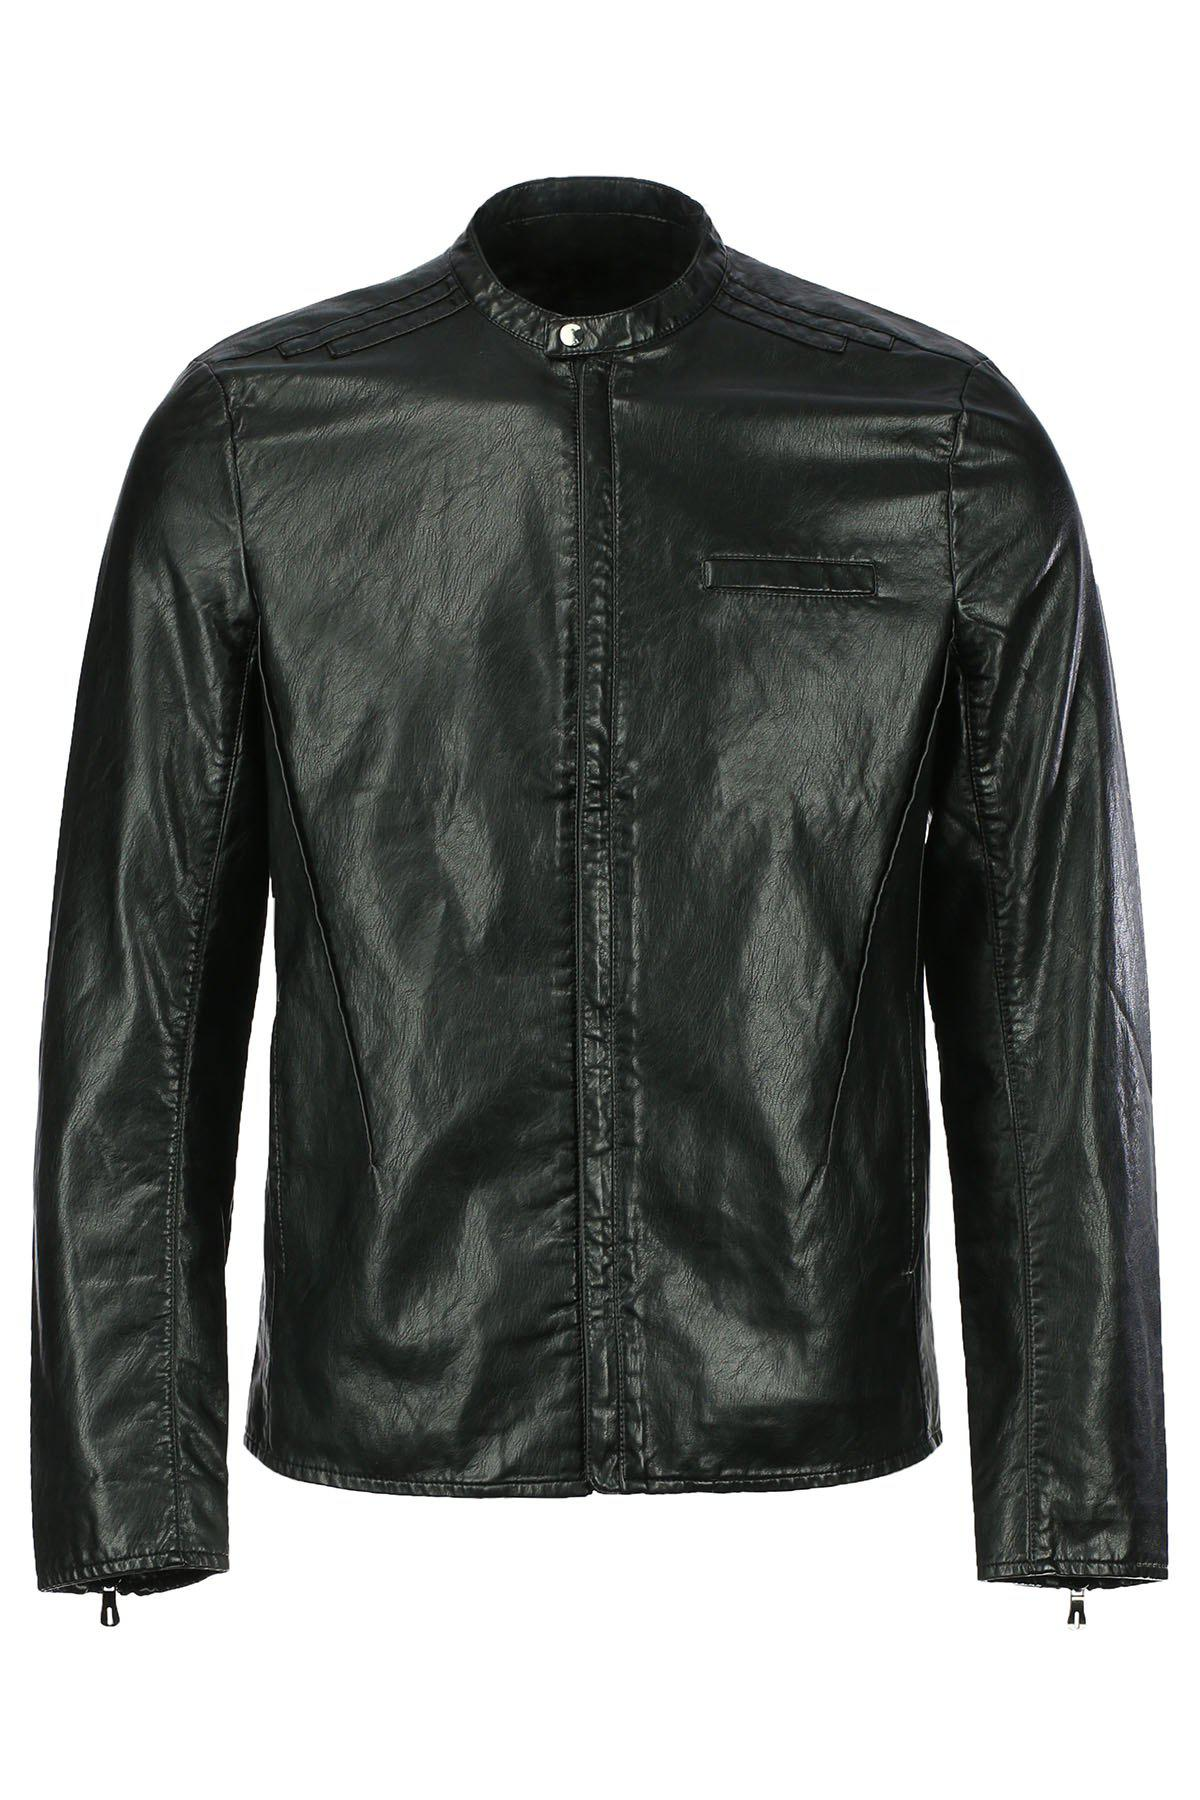 Vogue Stand Collar Zipper Cuffs Slimming Long Sleeves Men's PU Leather Jacket